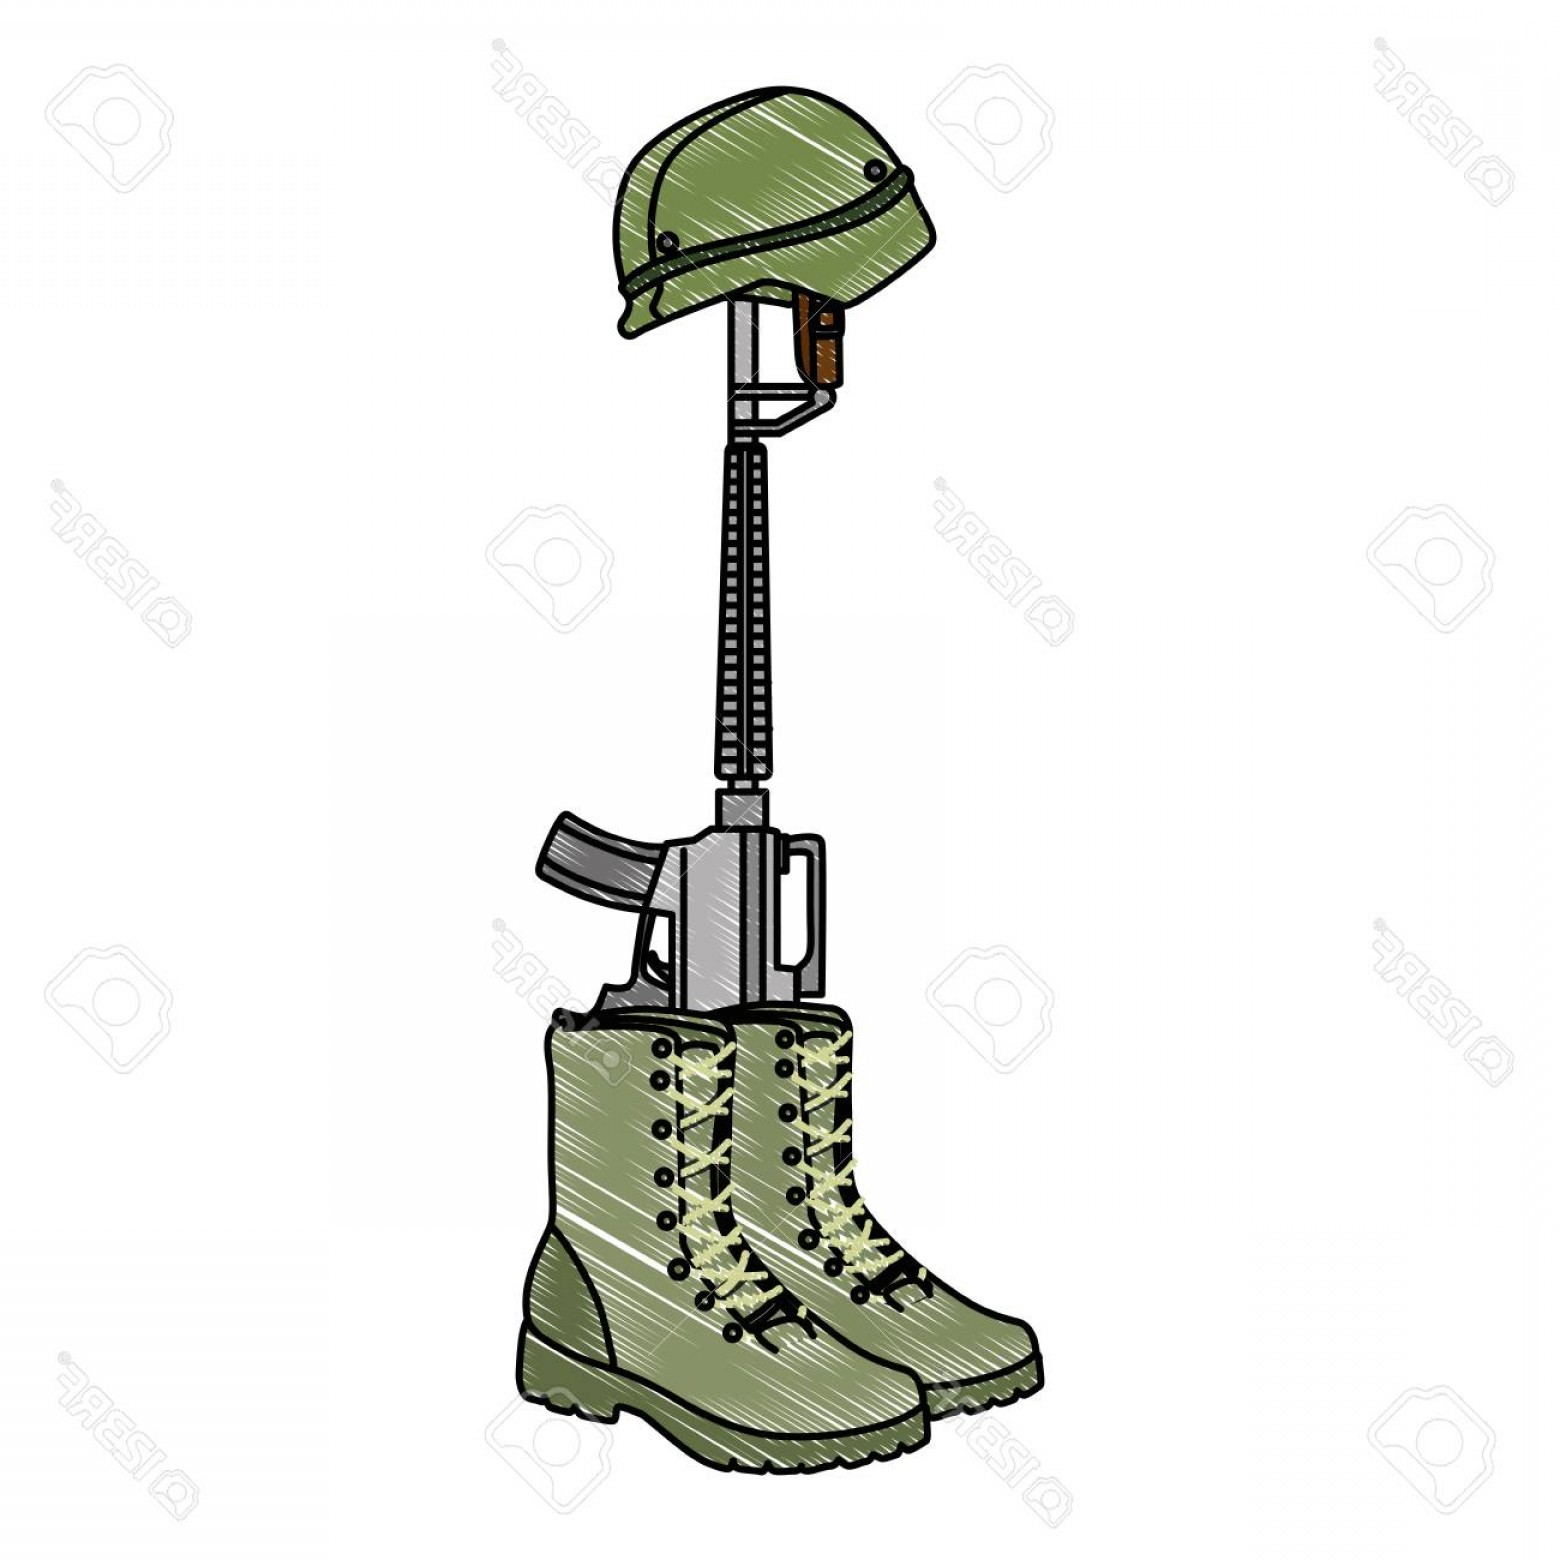 Vector Rifle And Boots: Photostock Vector Military Boots With Rifle And Helmet Vector Illustration Design